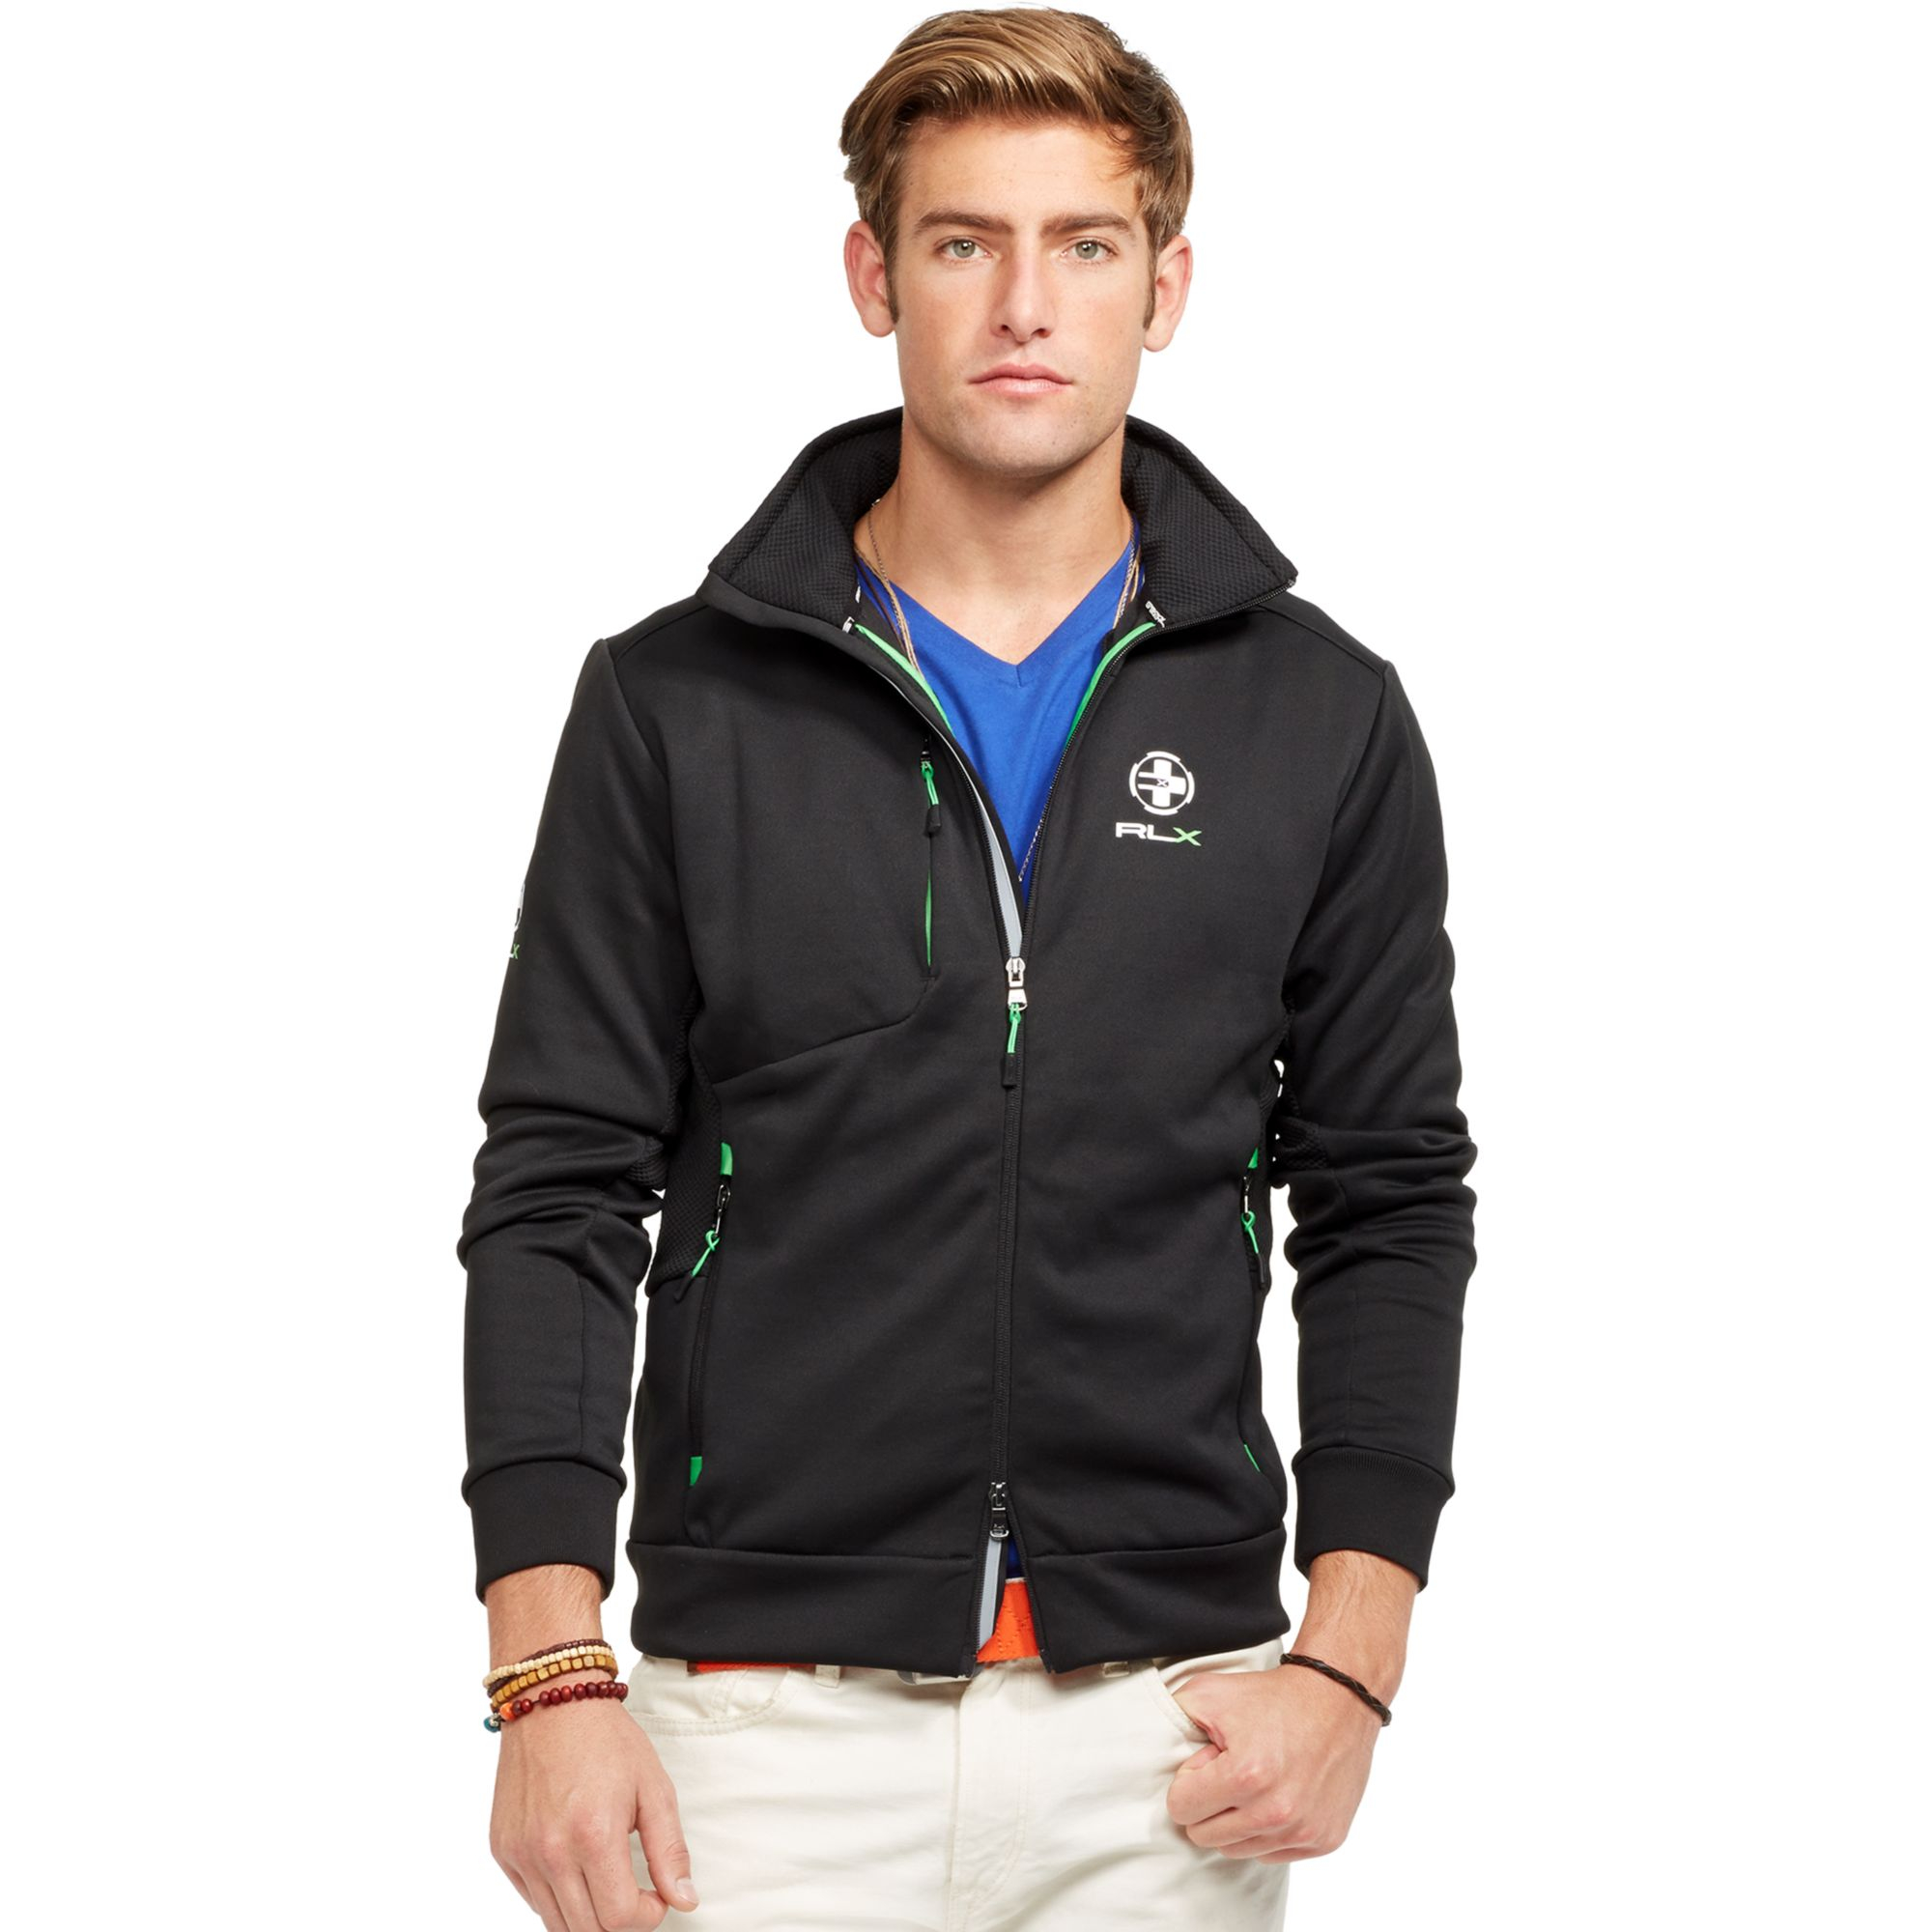 polo ralph lauren rlx performance jersey jacket in black. Black Bedroom Furniture Sets. Home Design Ideas